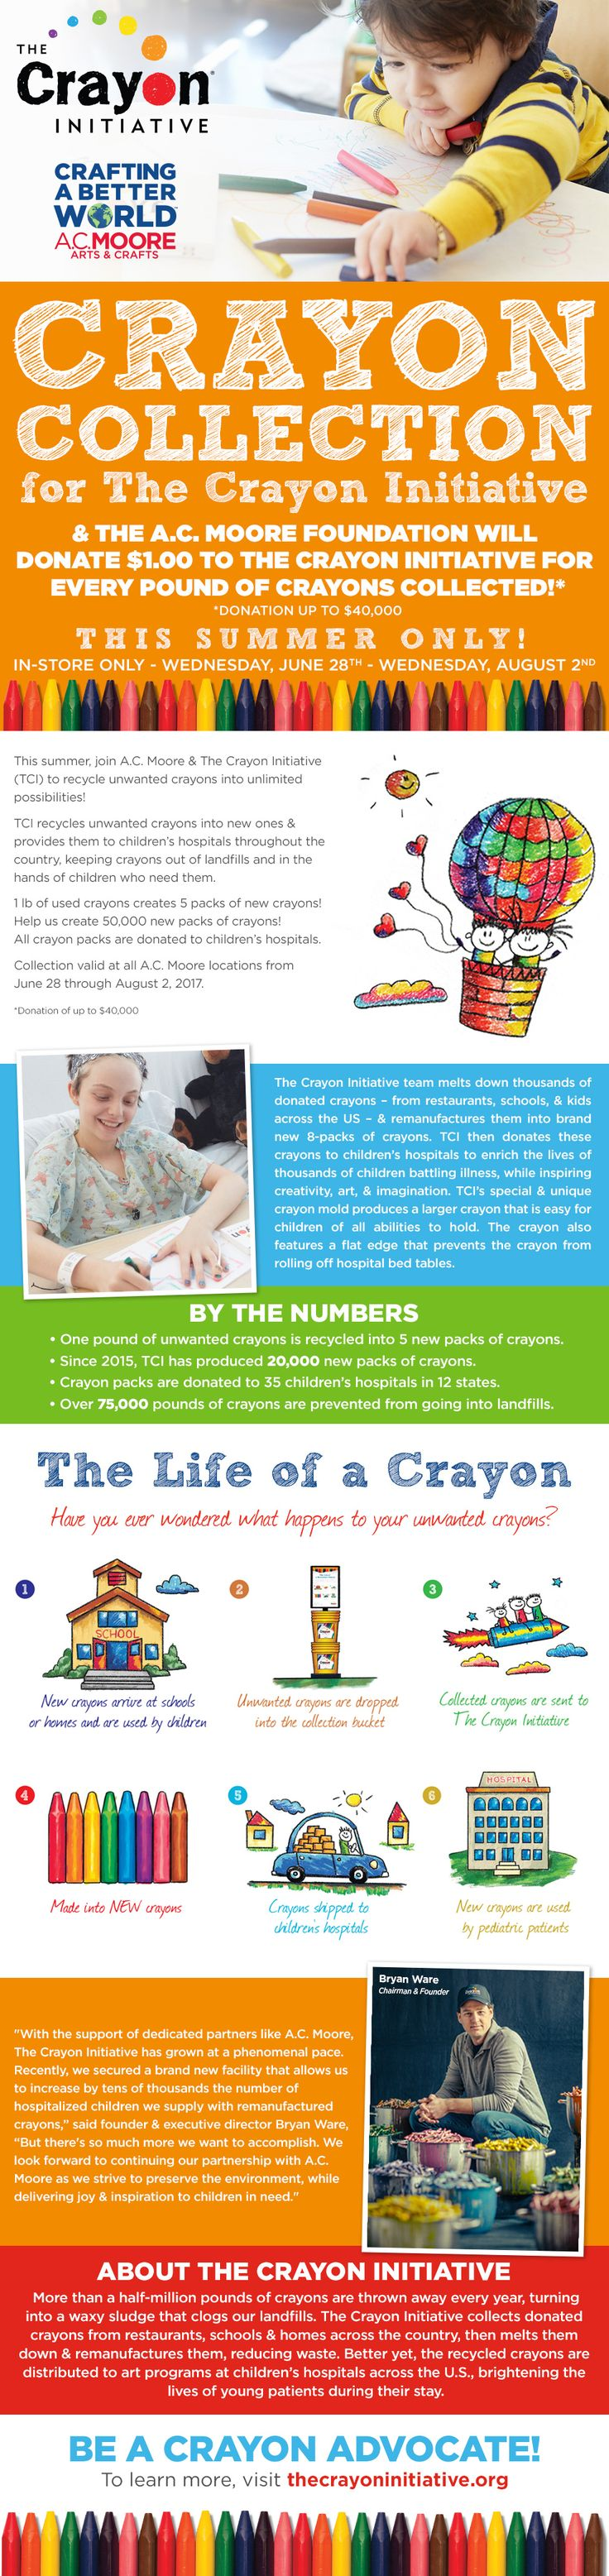 The Crayon Initiative at AC Moore Summer 2017